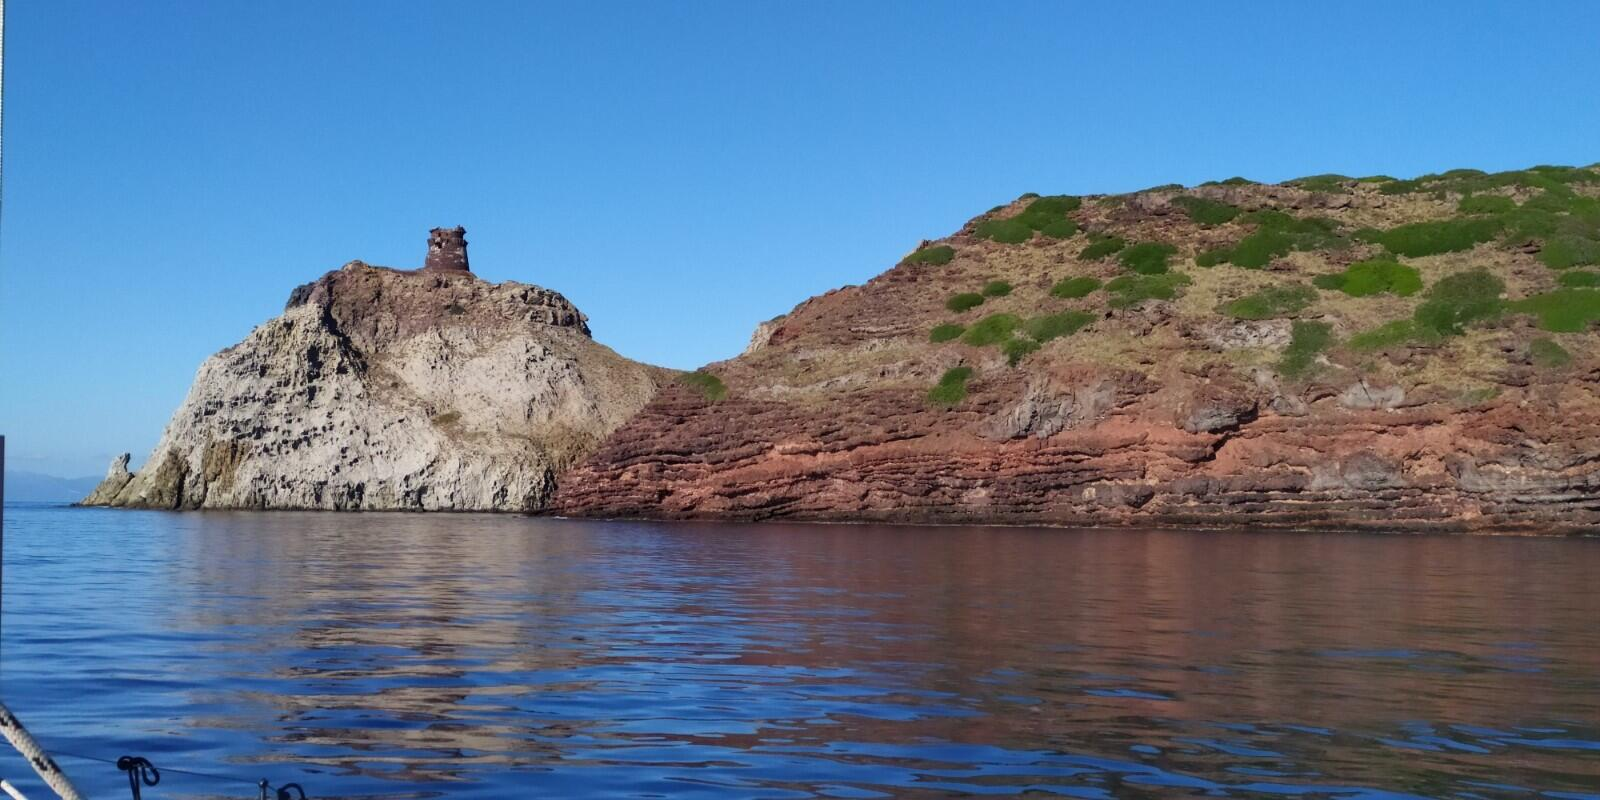 A weekend in the most fascinating island of the Tyrrhenian Sea - Capraia